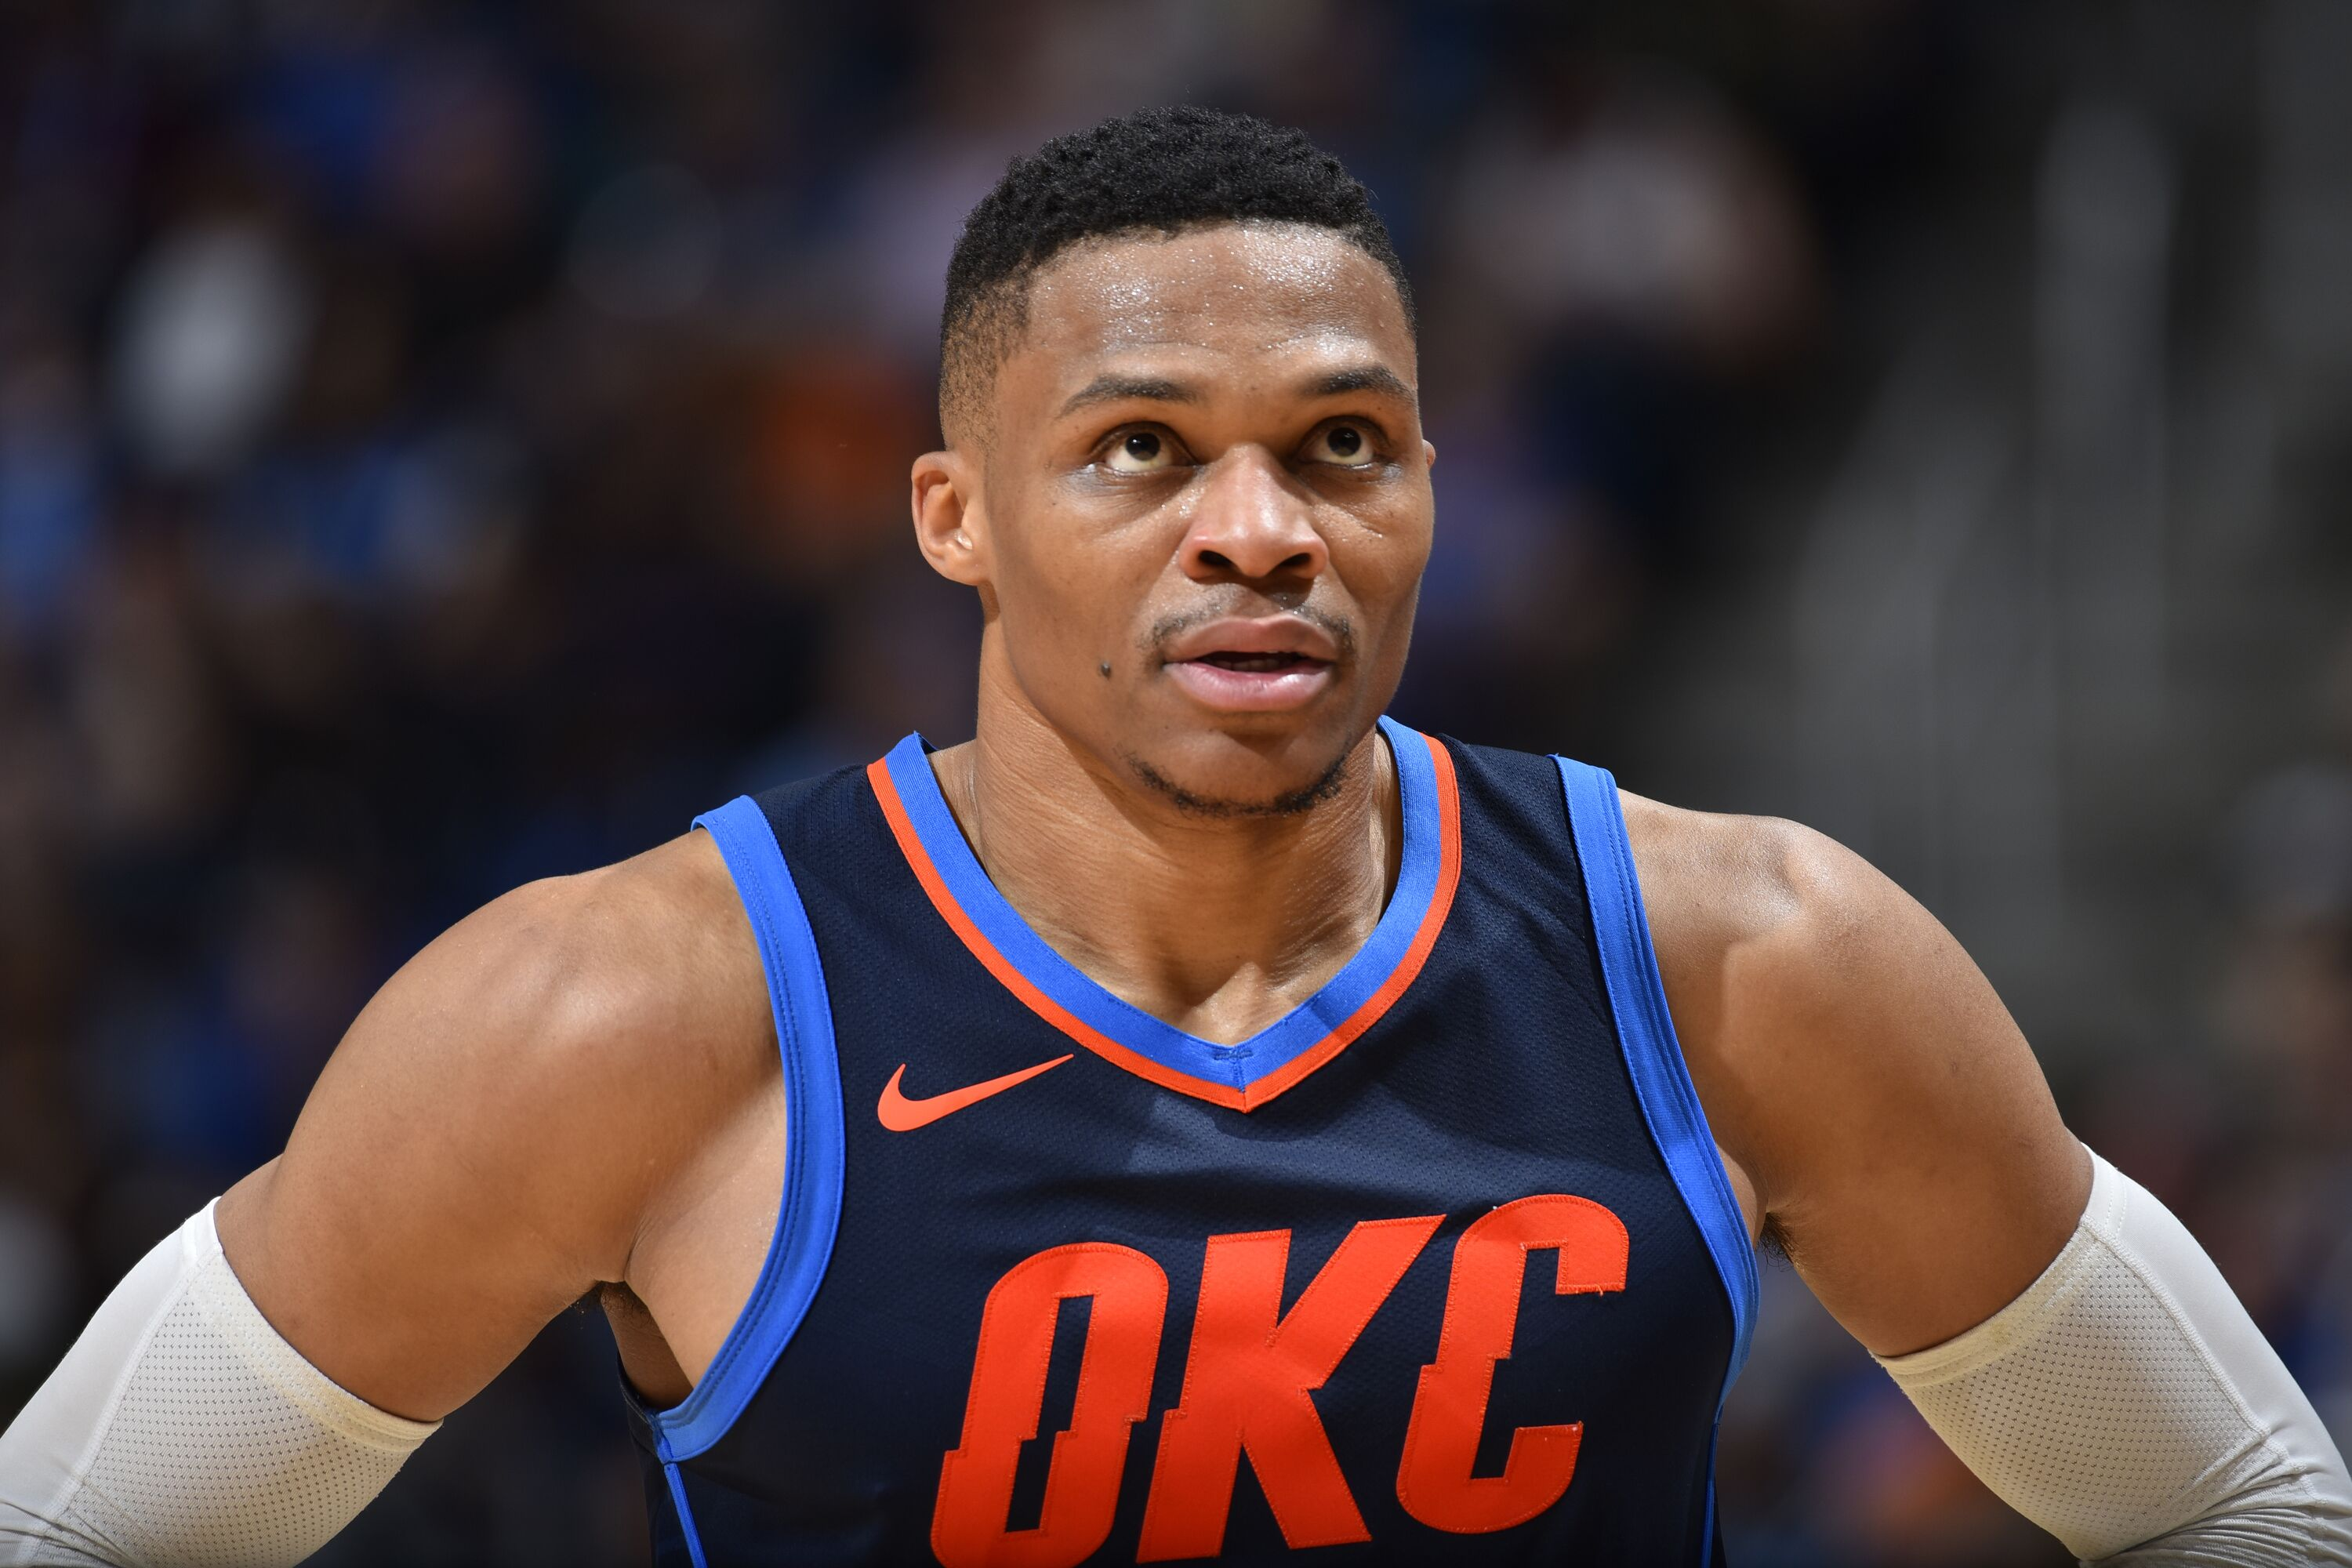 OKC Thunder star Russell Westbrook